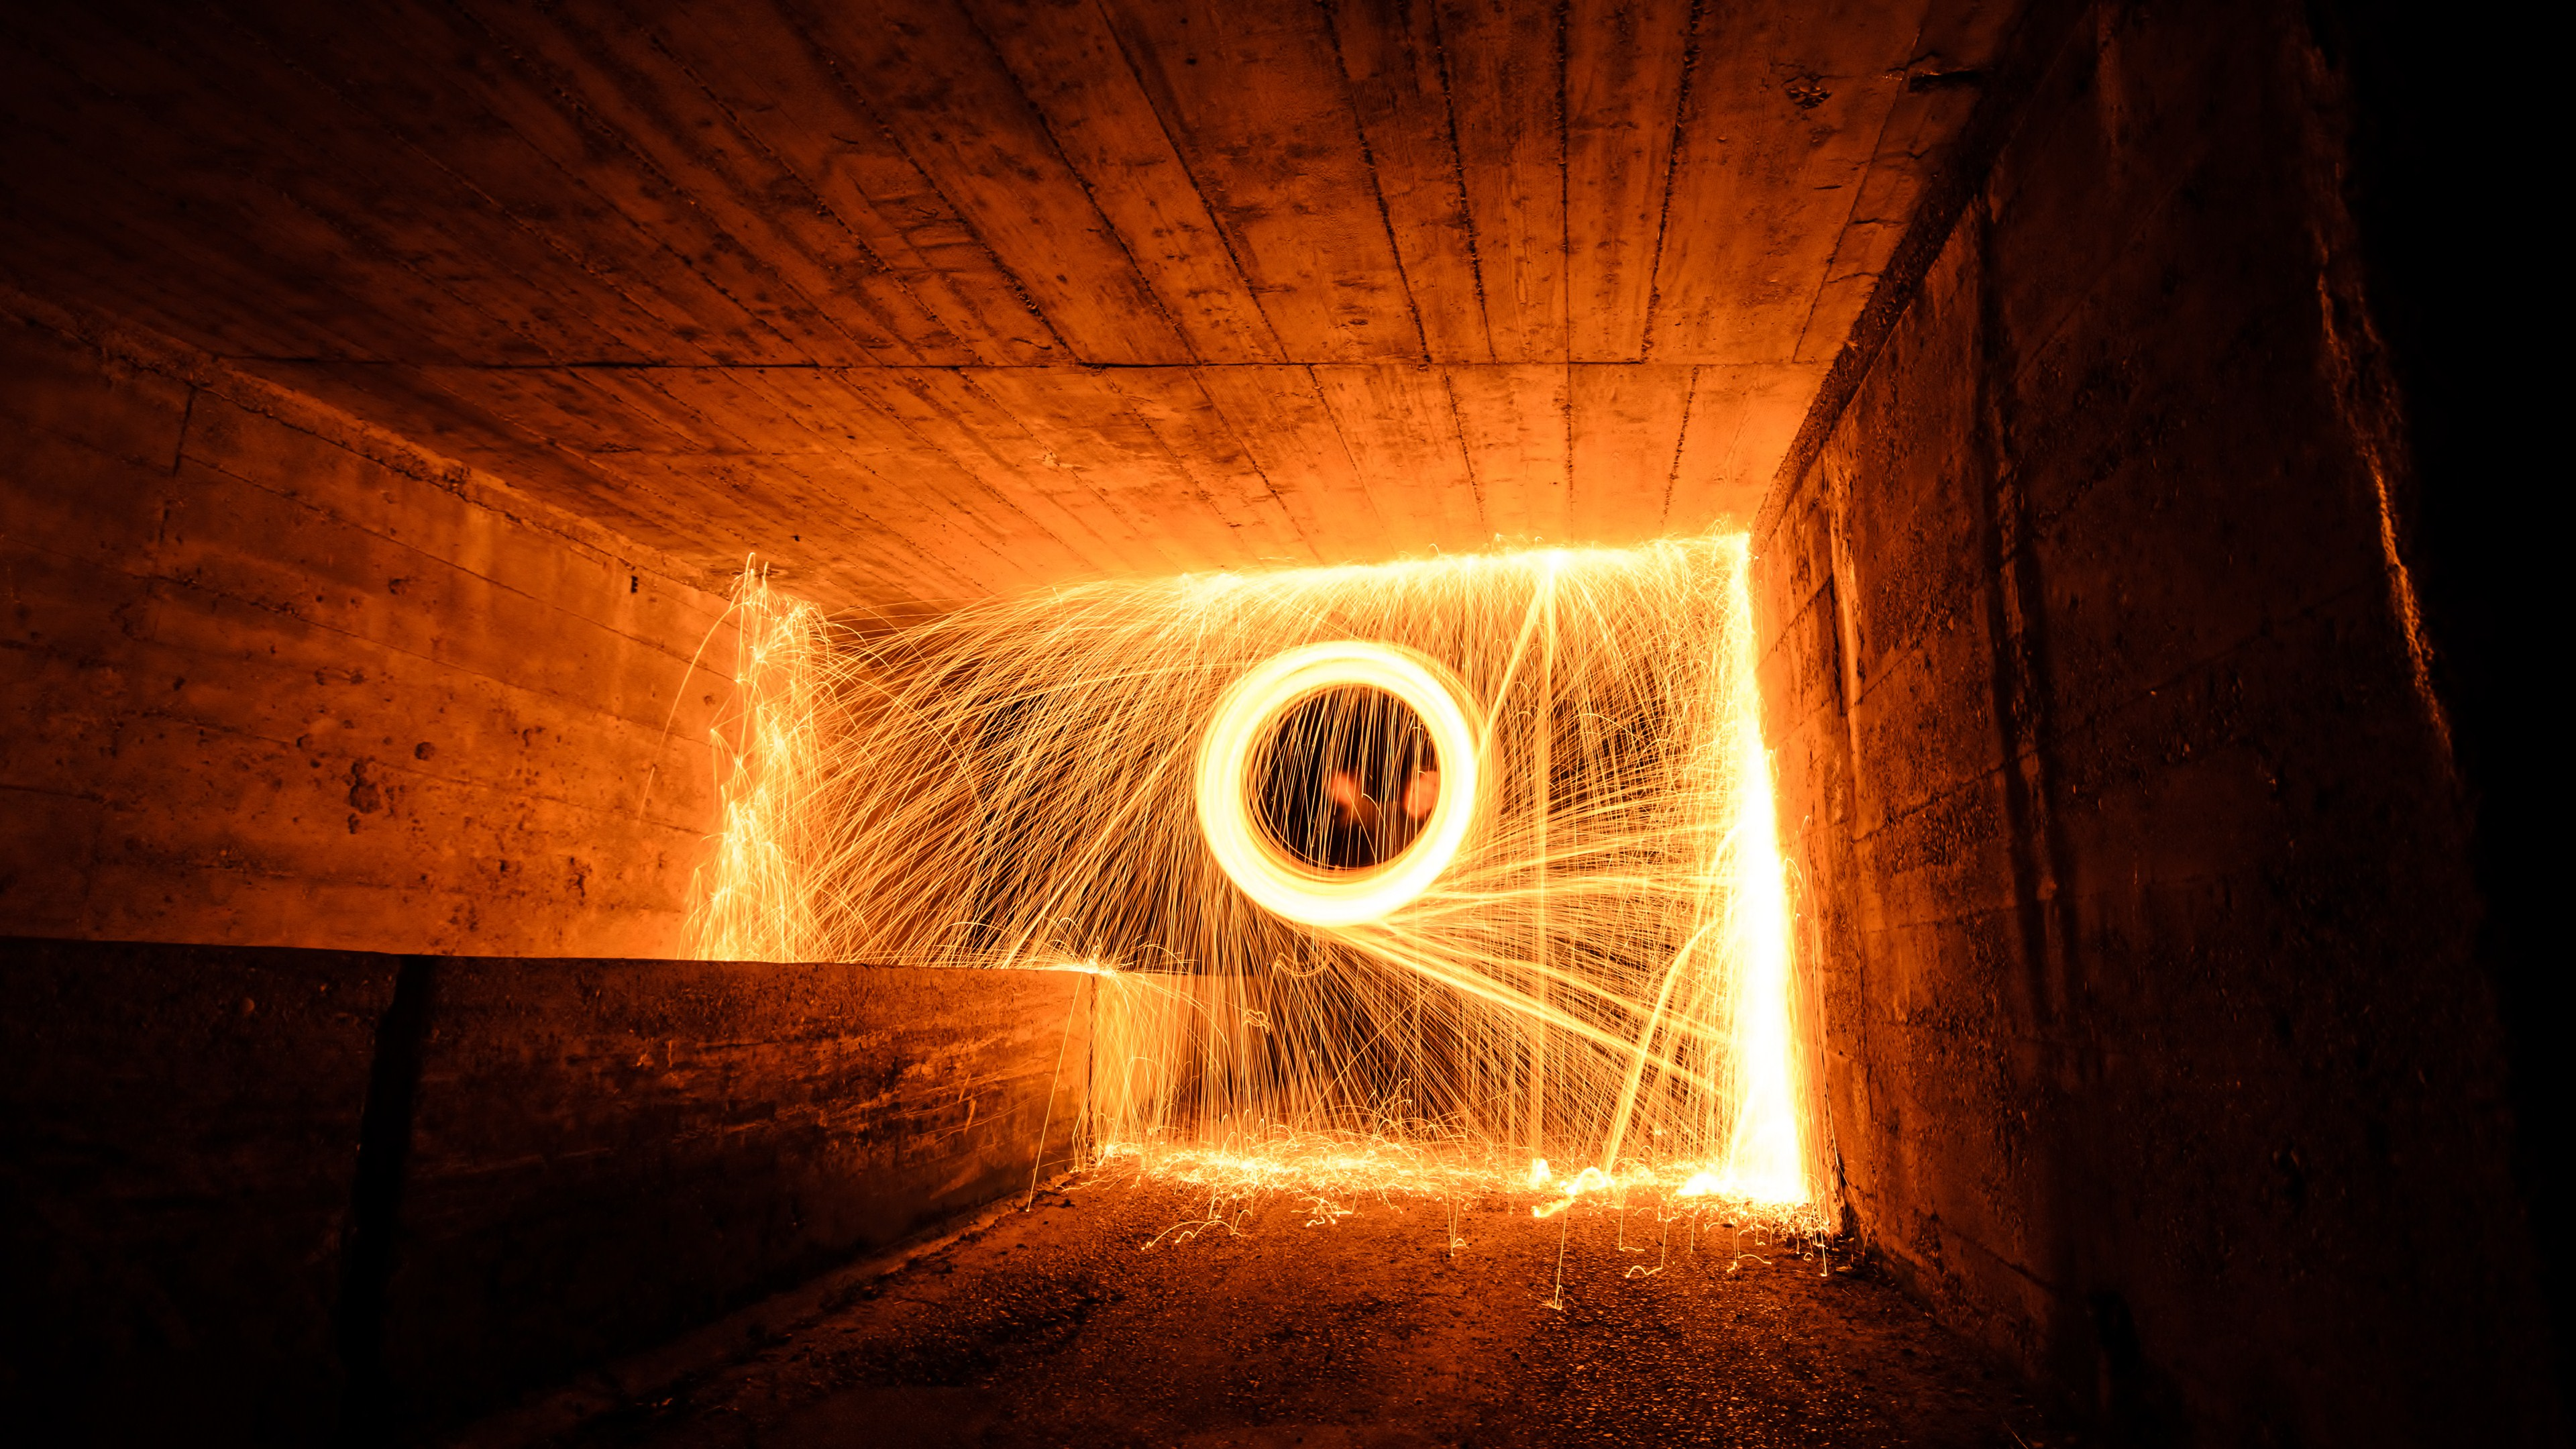 Hot Iron Forge 4K Wallpaper Full 1080p Ultra HD Wallpapers 3840x2160